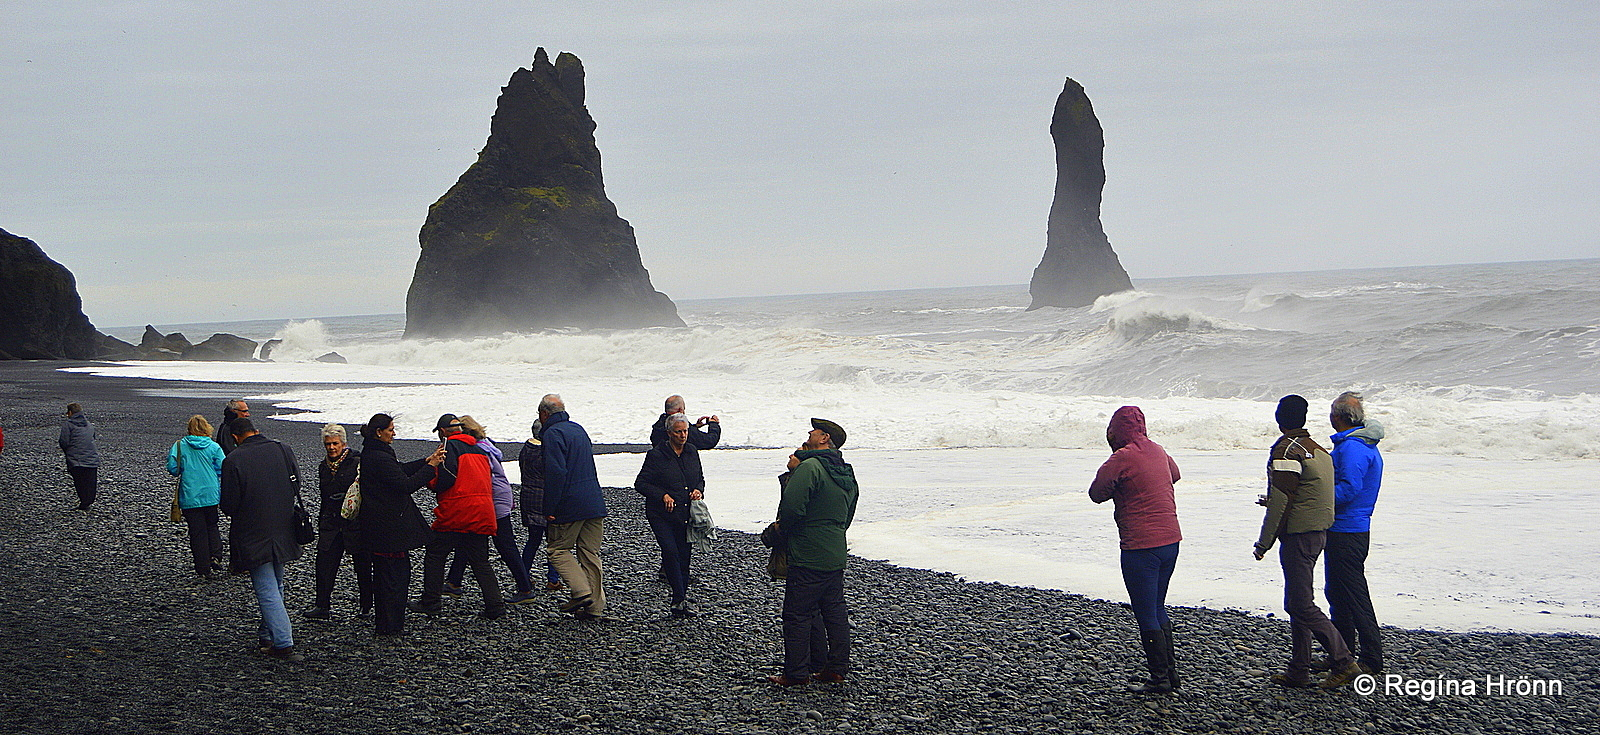 5fc54d74d In August 2013 there was a storm in Iceland and there were big scary waves  in Reynisfjara. Tourists were watching the waves